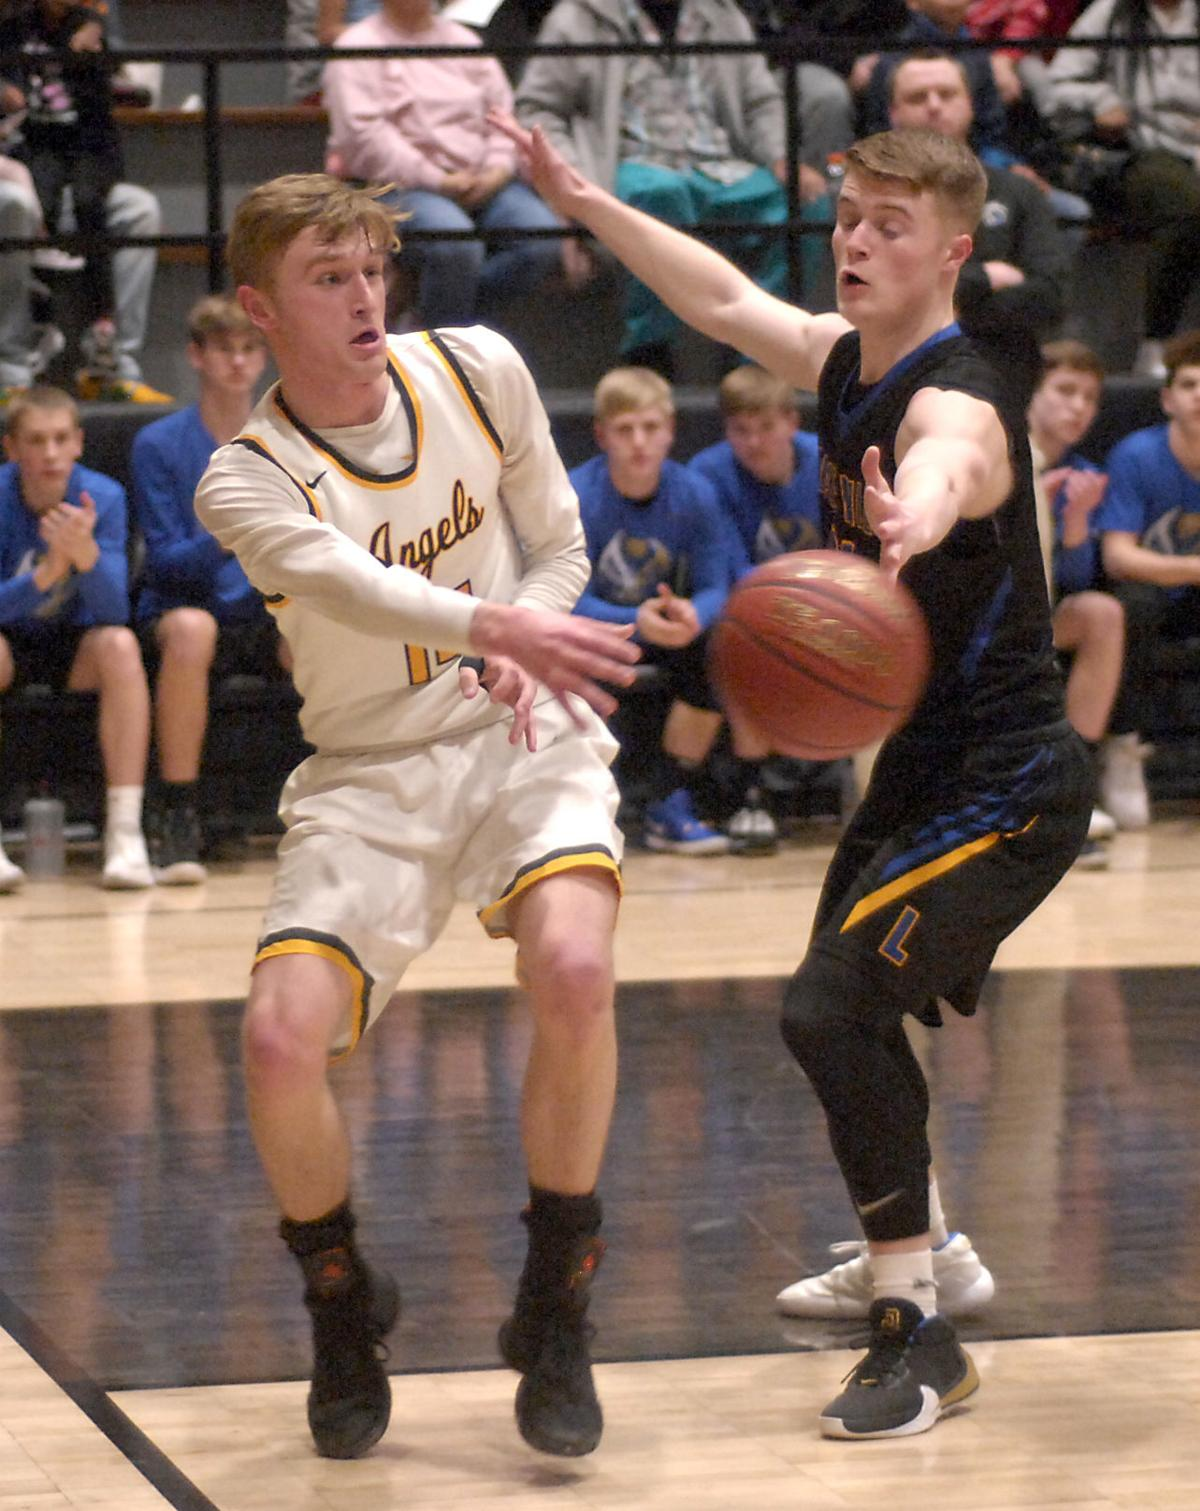 03072020-JT-WIAA_BBBALL_LM_ST_CATS-GSP